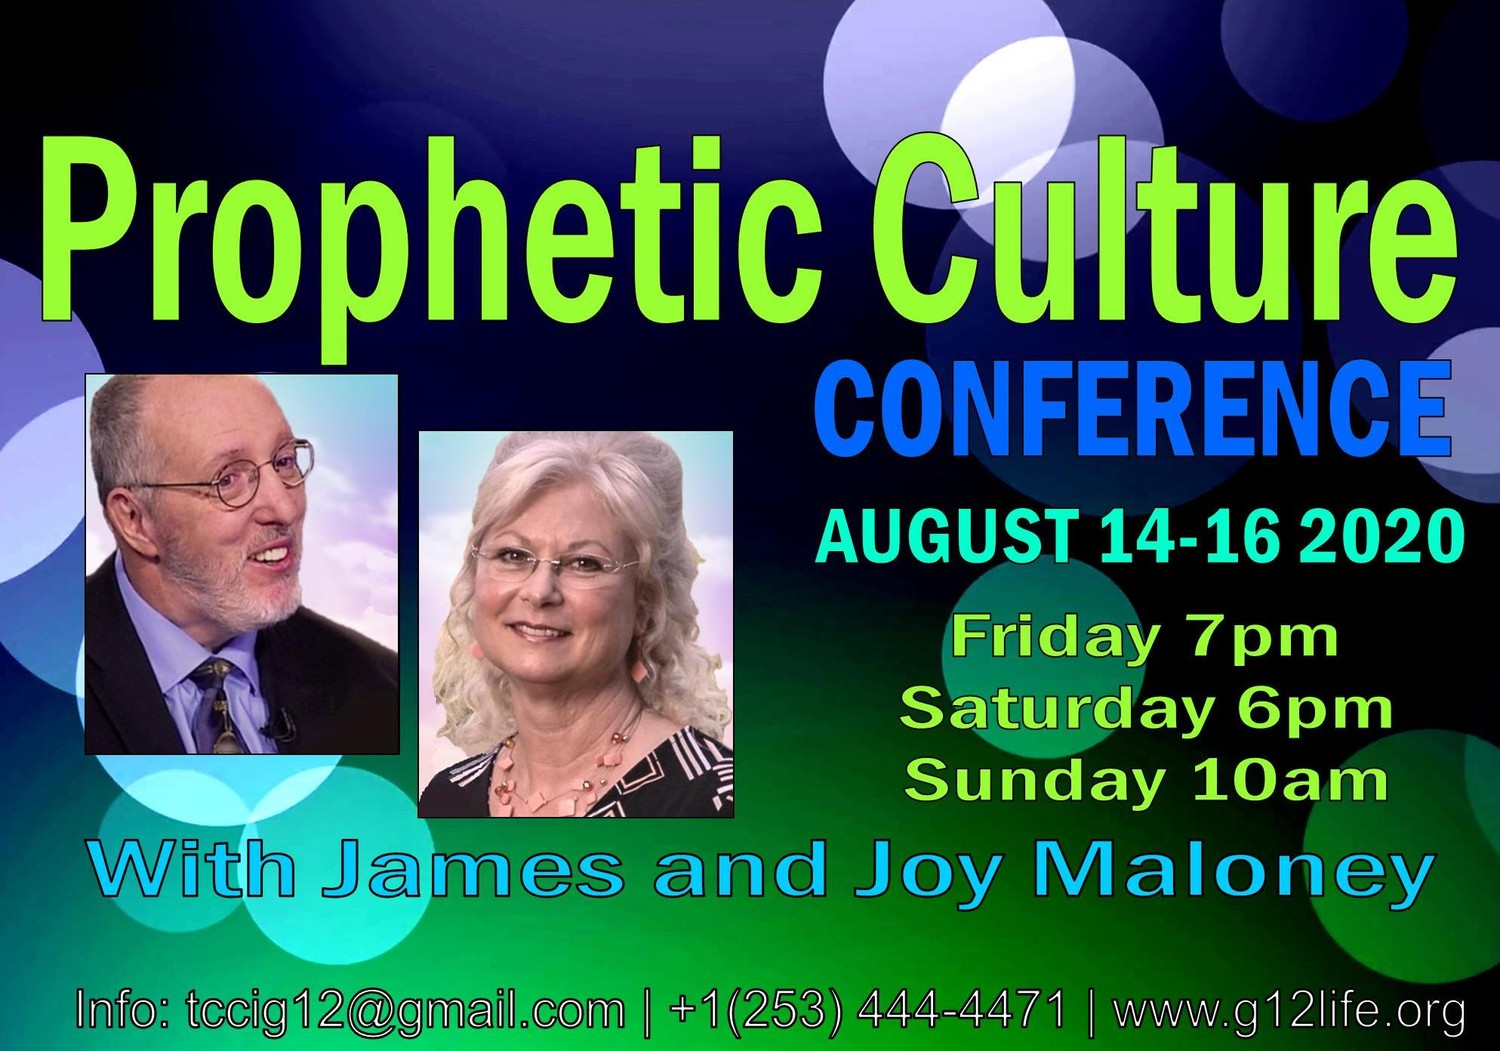 Prophetic Culture Conference with James and Joy Maloney (August 14-16,20) Конференция с участием Джеймса и Джой Малони (Август 14-16, 2020)